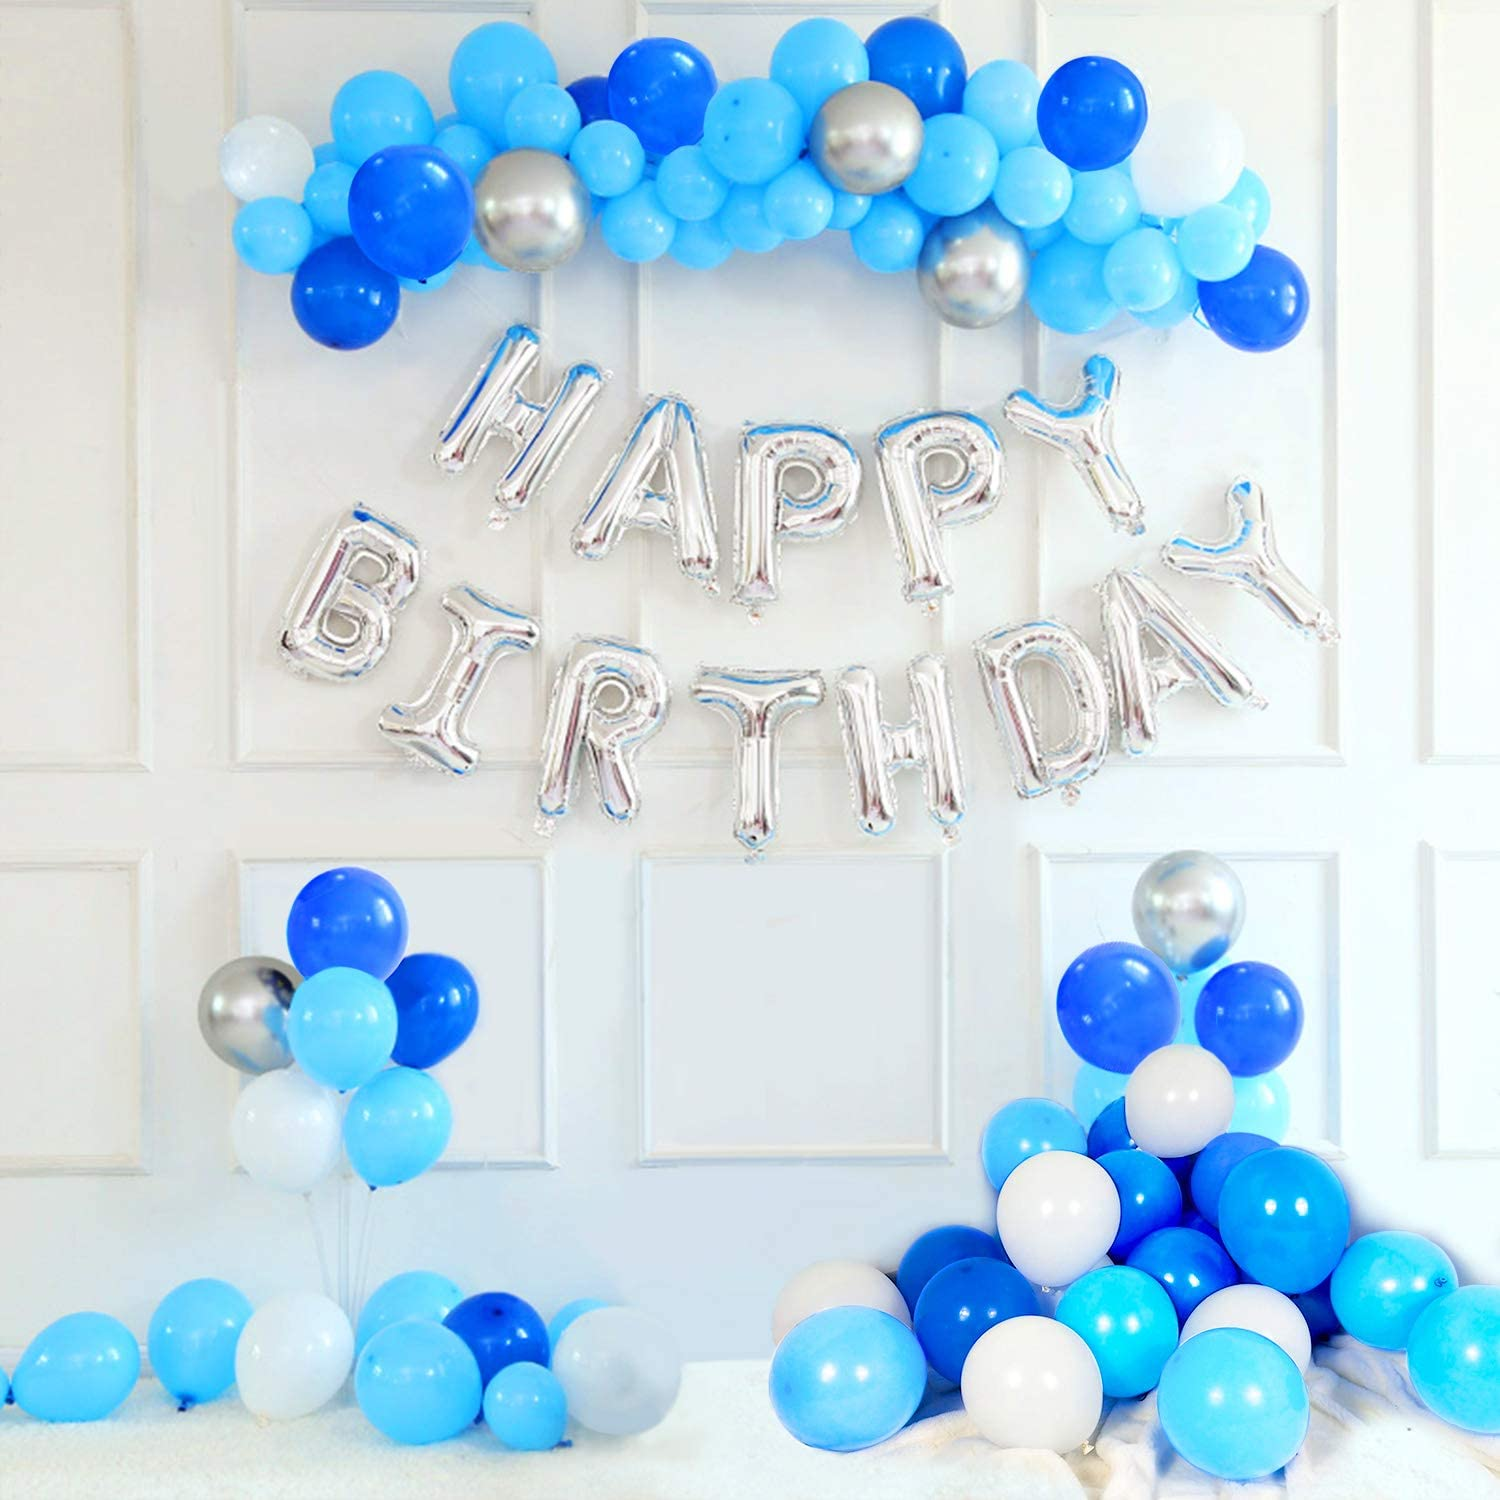 Foil Happy Birthday Balloon Lock down Birthday Party Air Filled Decoration Event